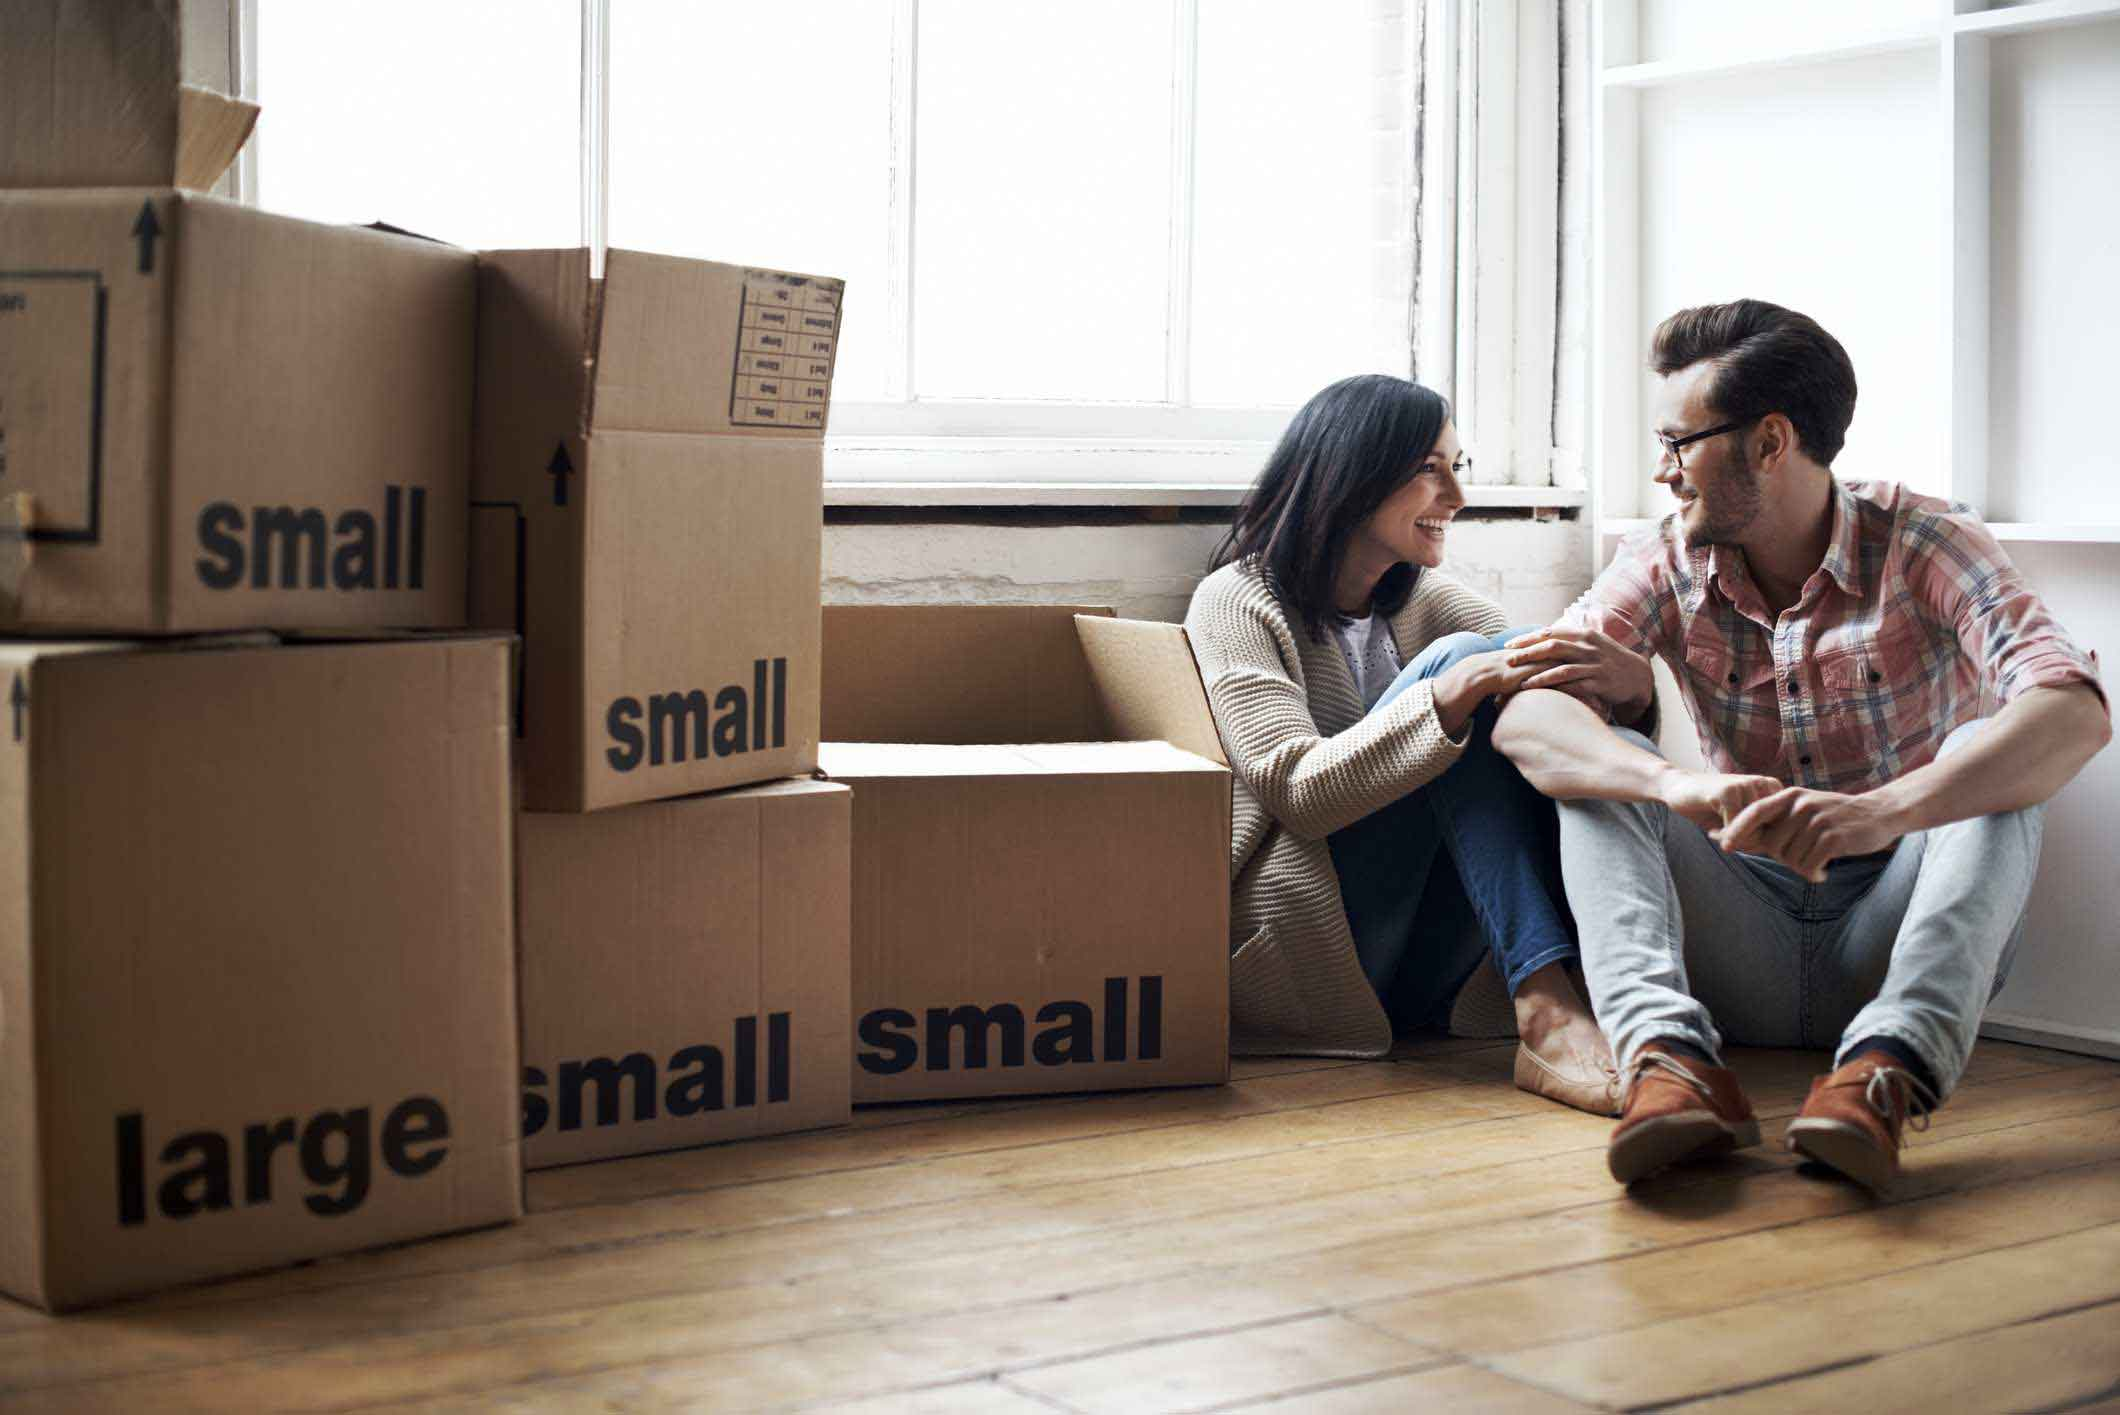 What should I expect on moving day?